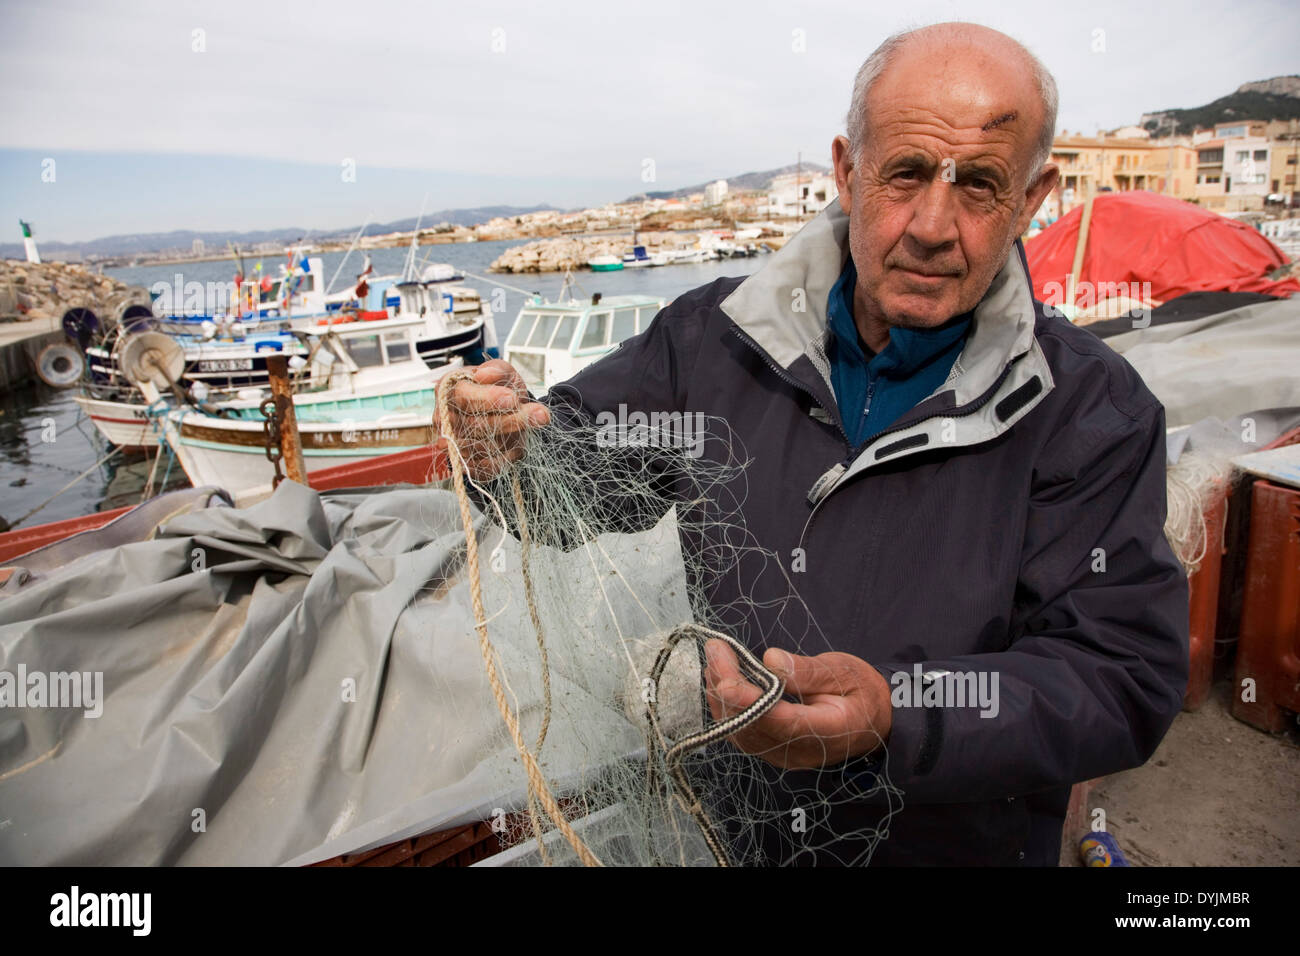 Jean-Claude Bianco fisherman and diver Luc Vanrell who found Antoine Saint Exupery's airplane. Near Marseille, France Stock Photo